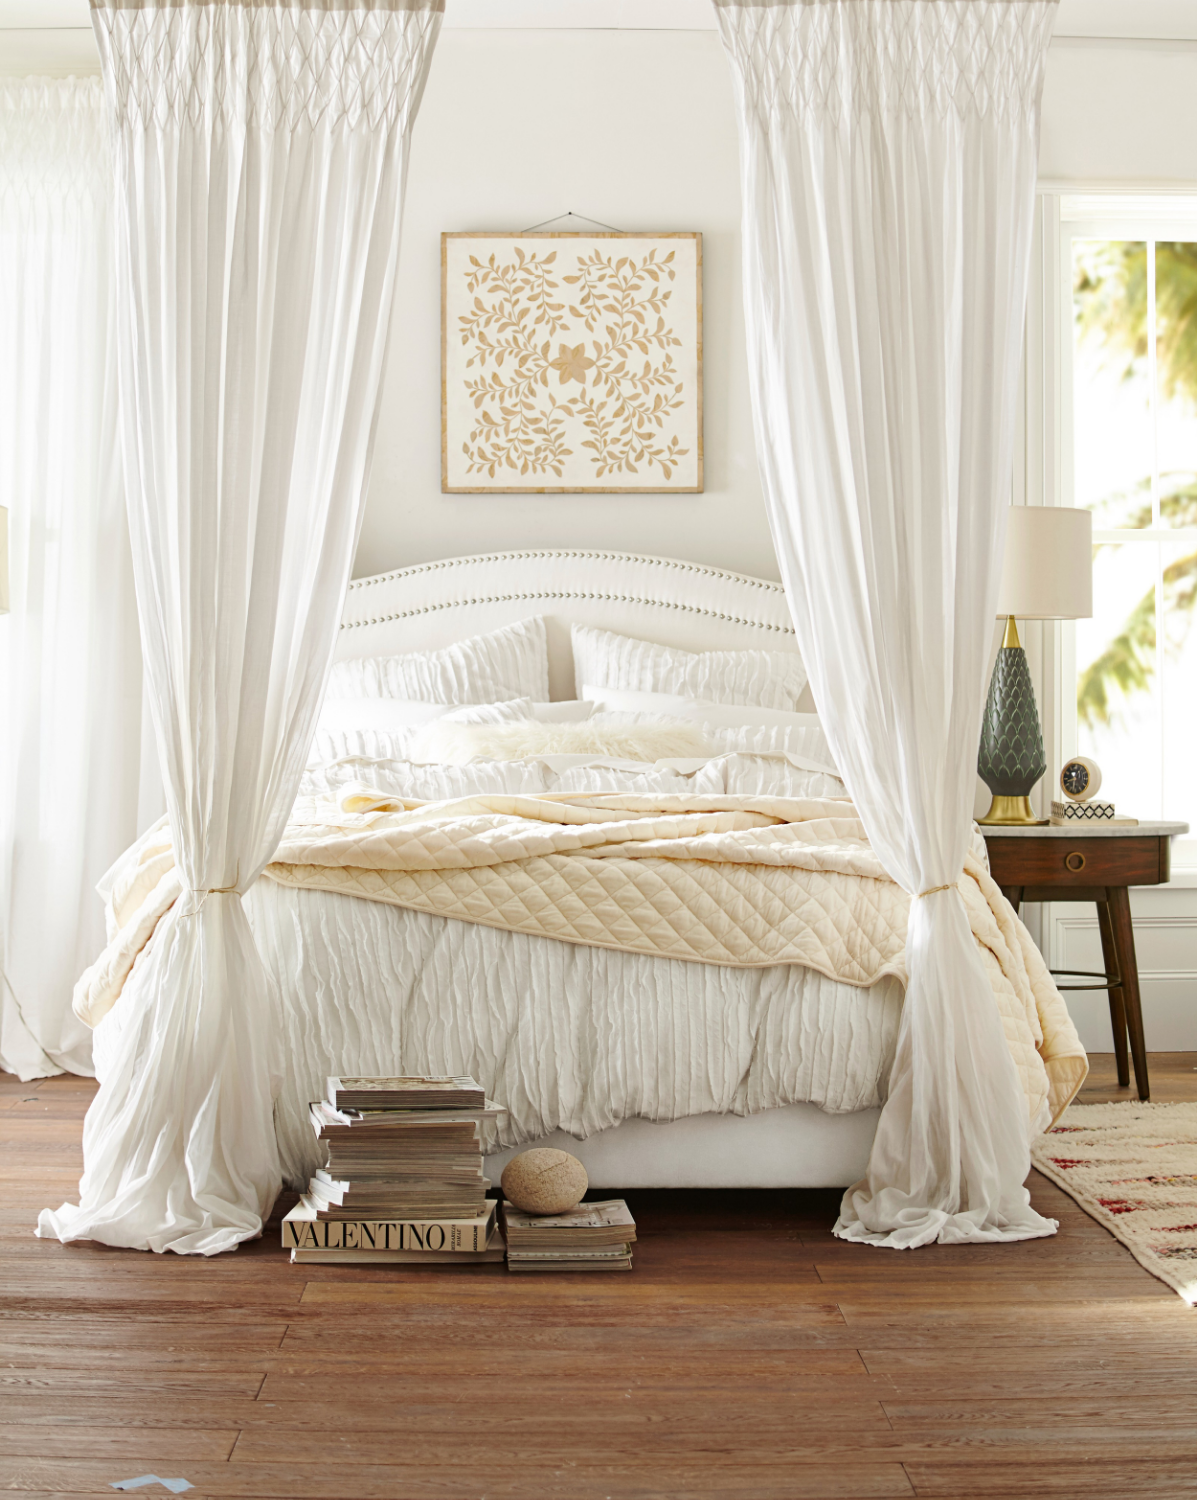 Dreamy bedding inspires peaceful sleep in this bedroom using creams and whites for a calm effect. A fabric headboard, layered strips of fabric keep the overall effect light and airy. Camille duvet cover and sham from Pottery Barn. Photo courtesy of Pottery Barn.